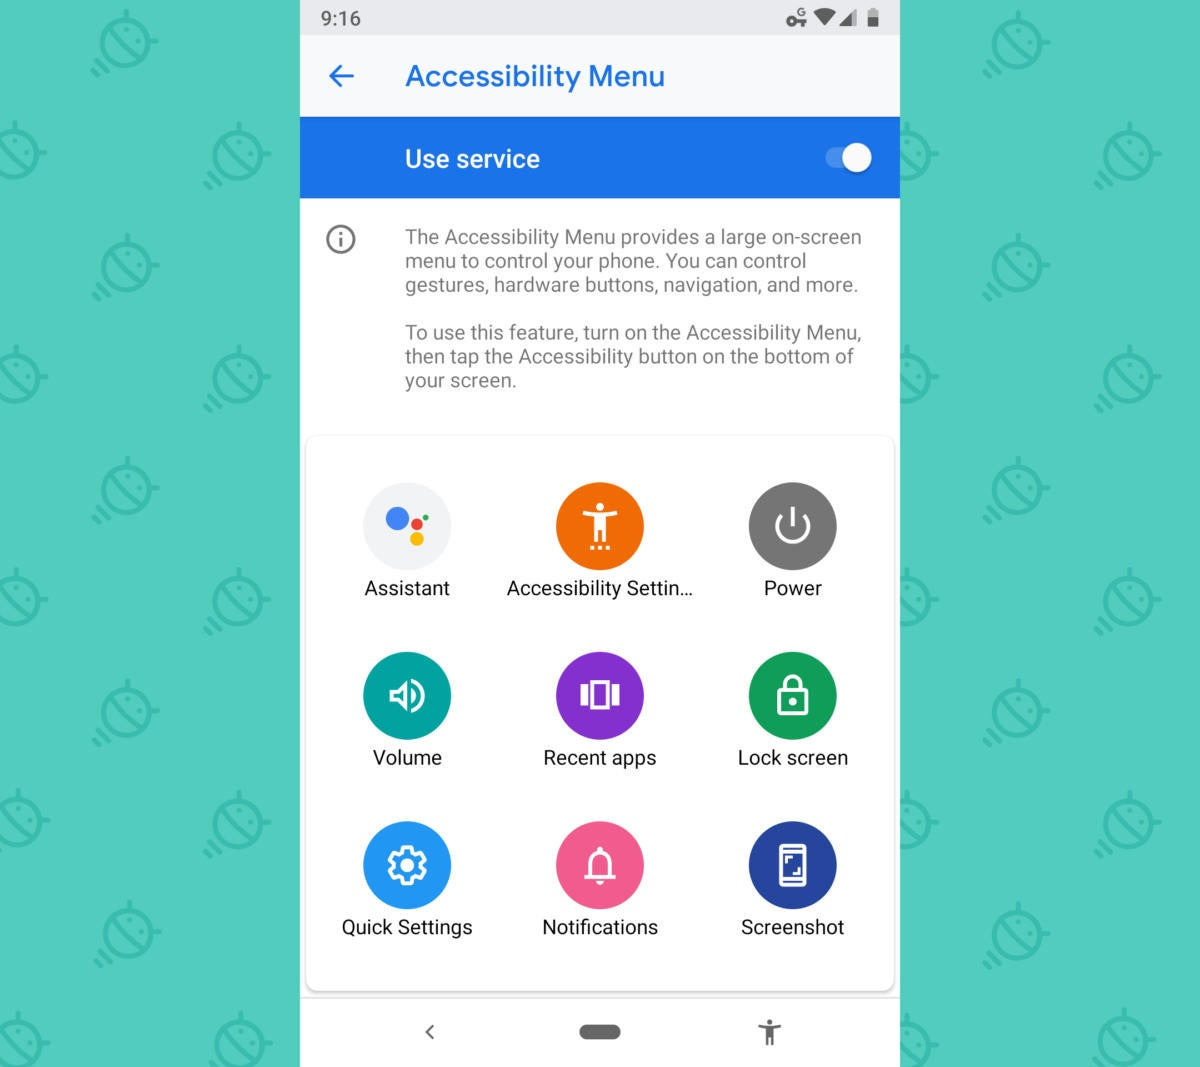 8 Android accessibility features that'll enhance any phone